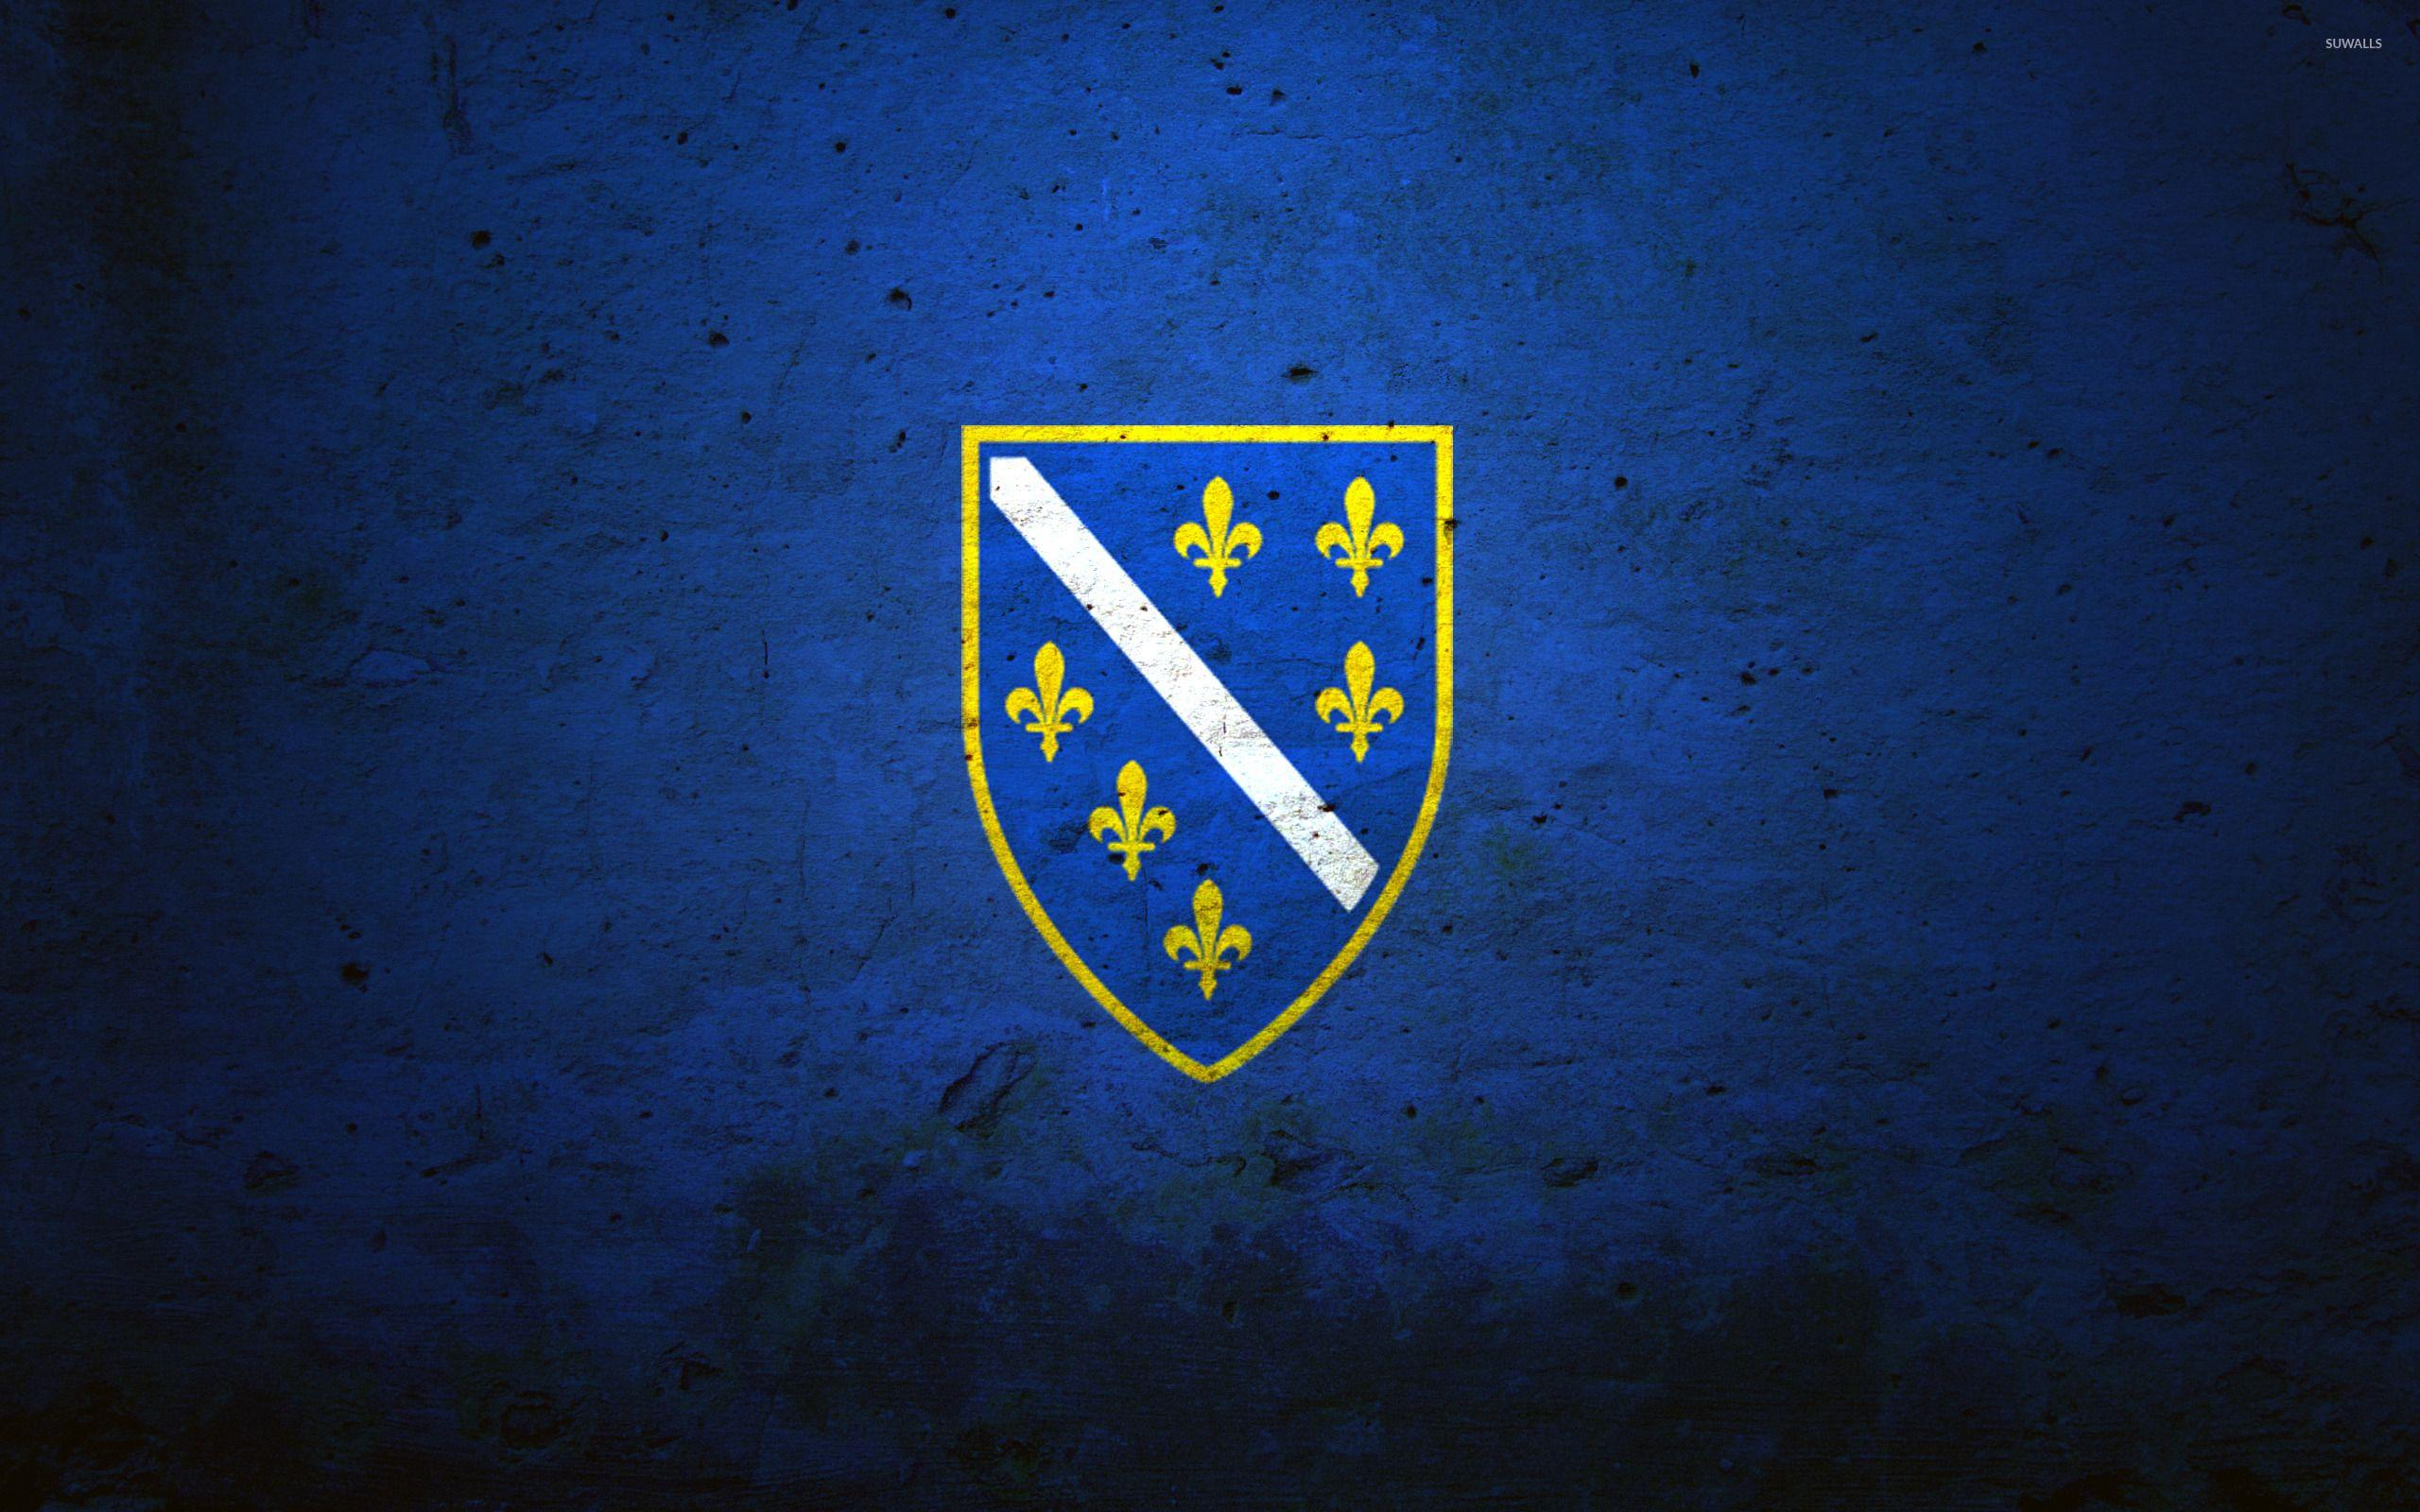 Flag of the Bosnian Kingdom wallpaper - Digital Art wallpapers - #43247